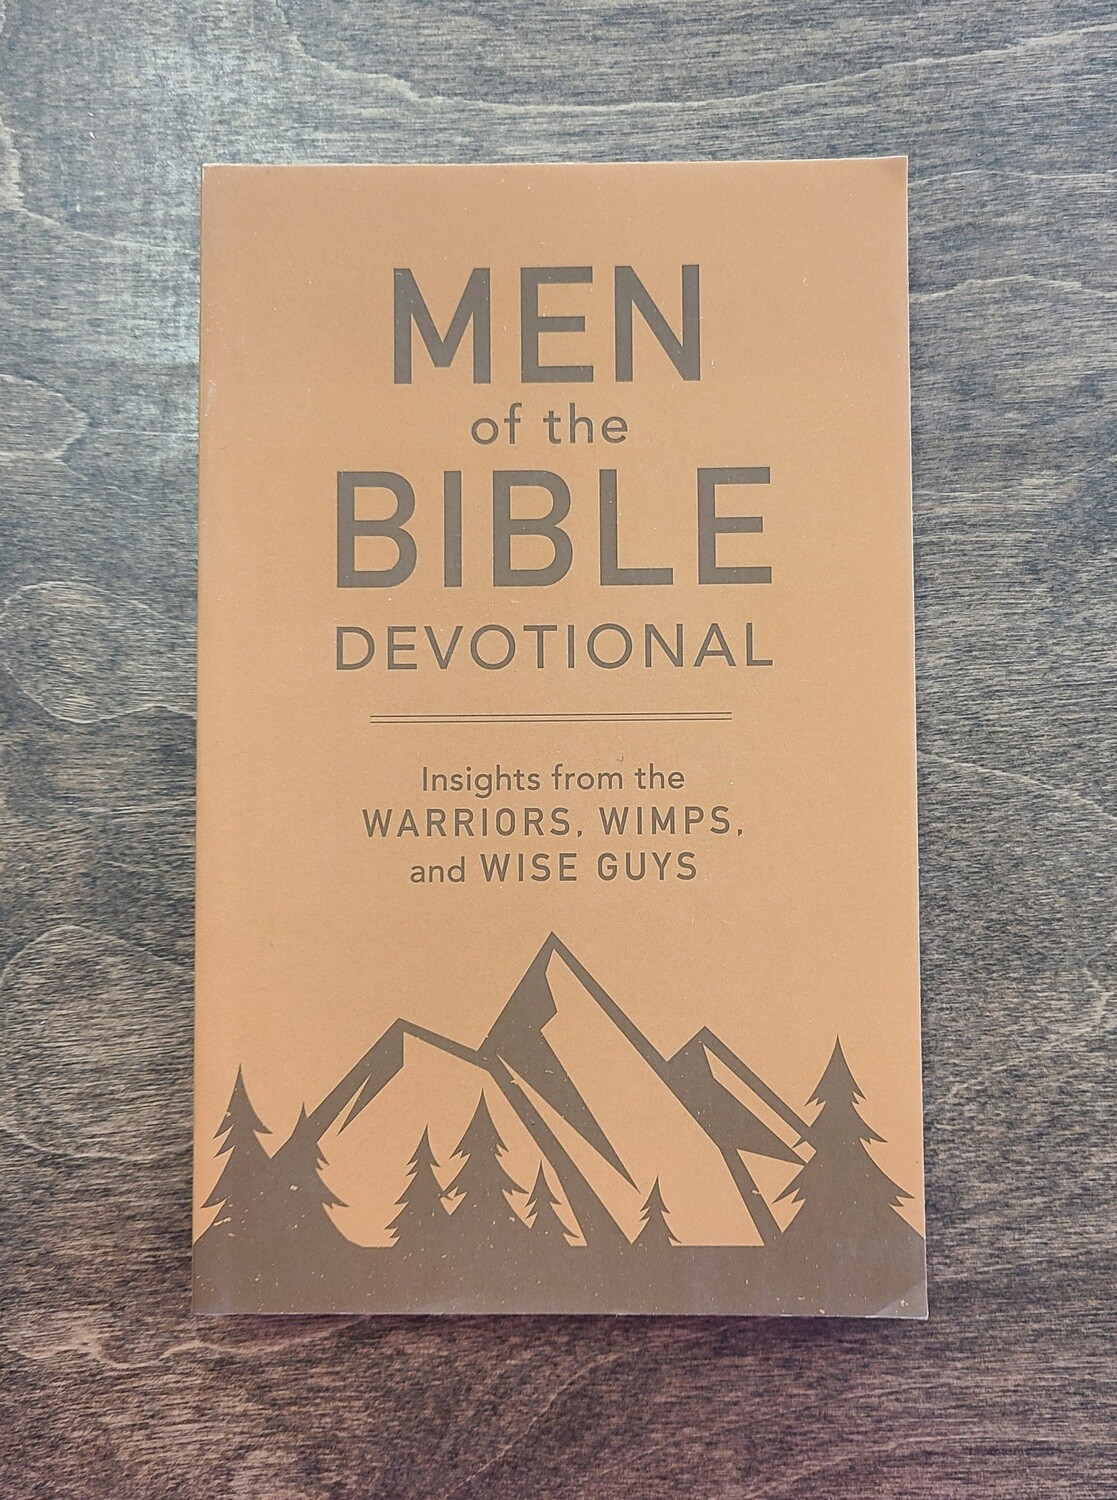 Men of the Bible Devotional: Insights from the Warriors, Wimps, and Wise Guys by Barbour Publising, Inc.